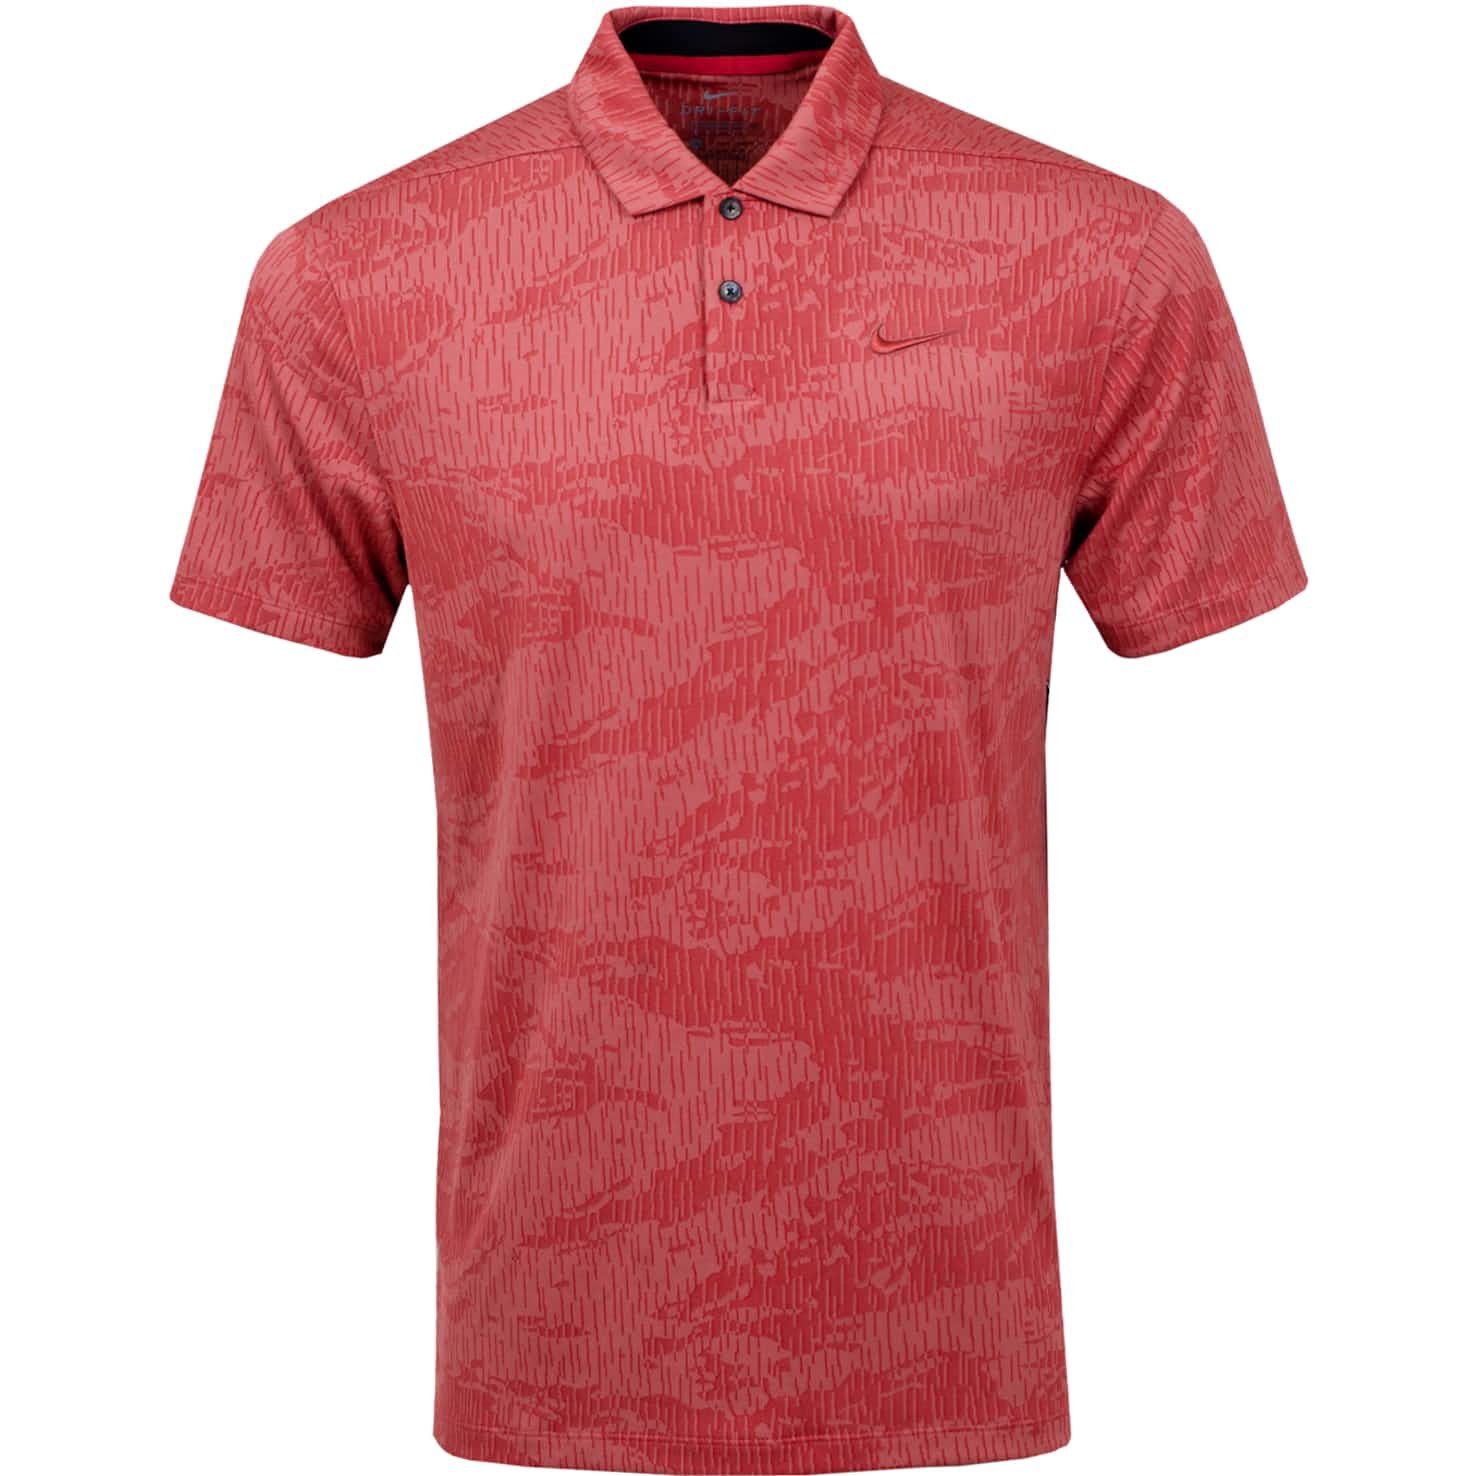 Áo golf Dri-FIT Vapor Men's Camo Golf Polo BV0479-609 | NIKE